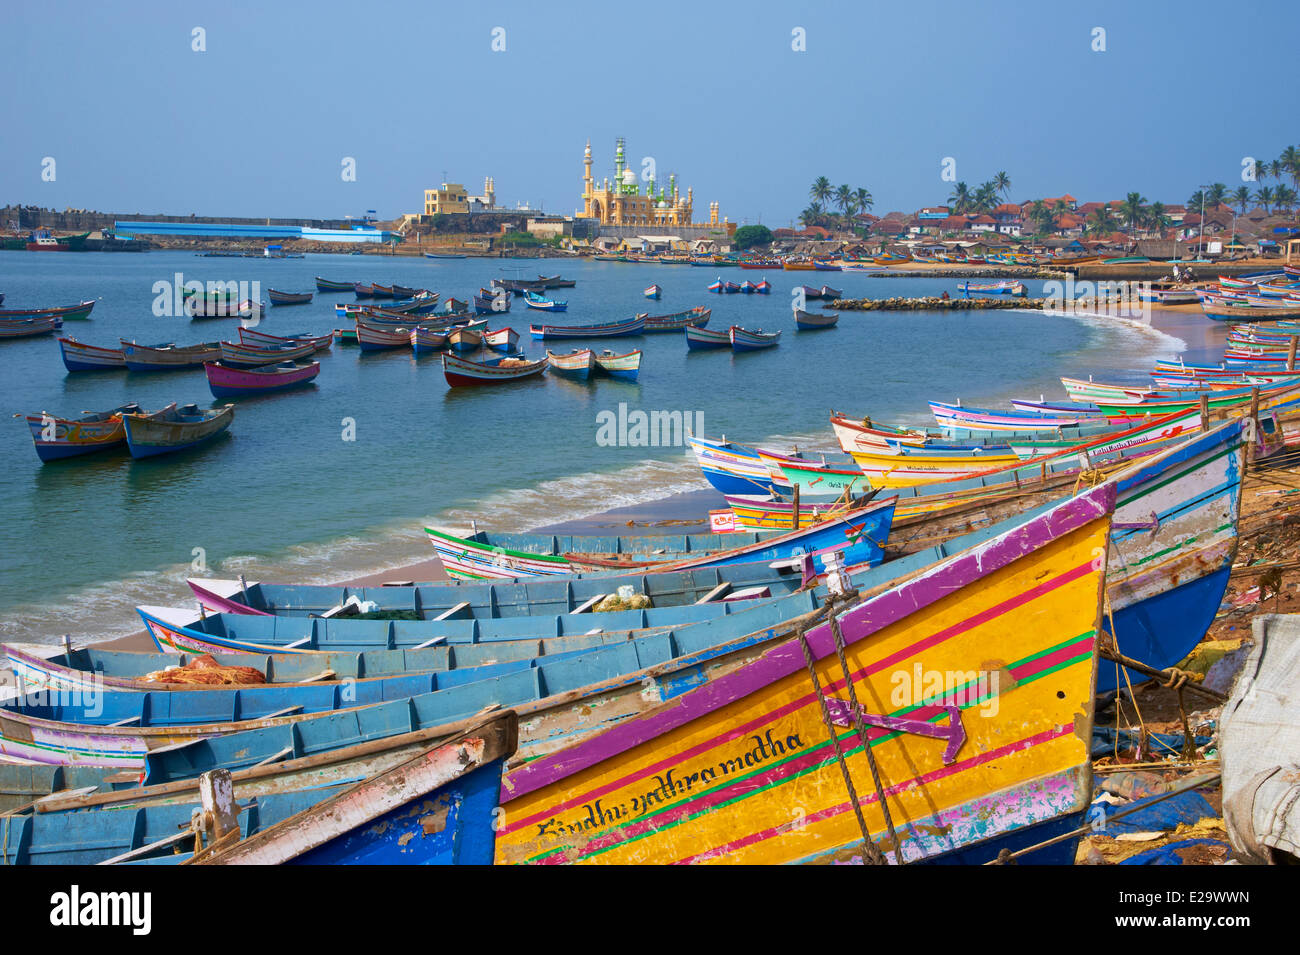 India, Kerala state, Vizhinjam, fishing harbour near Kovalam - Stock Image